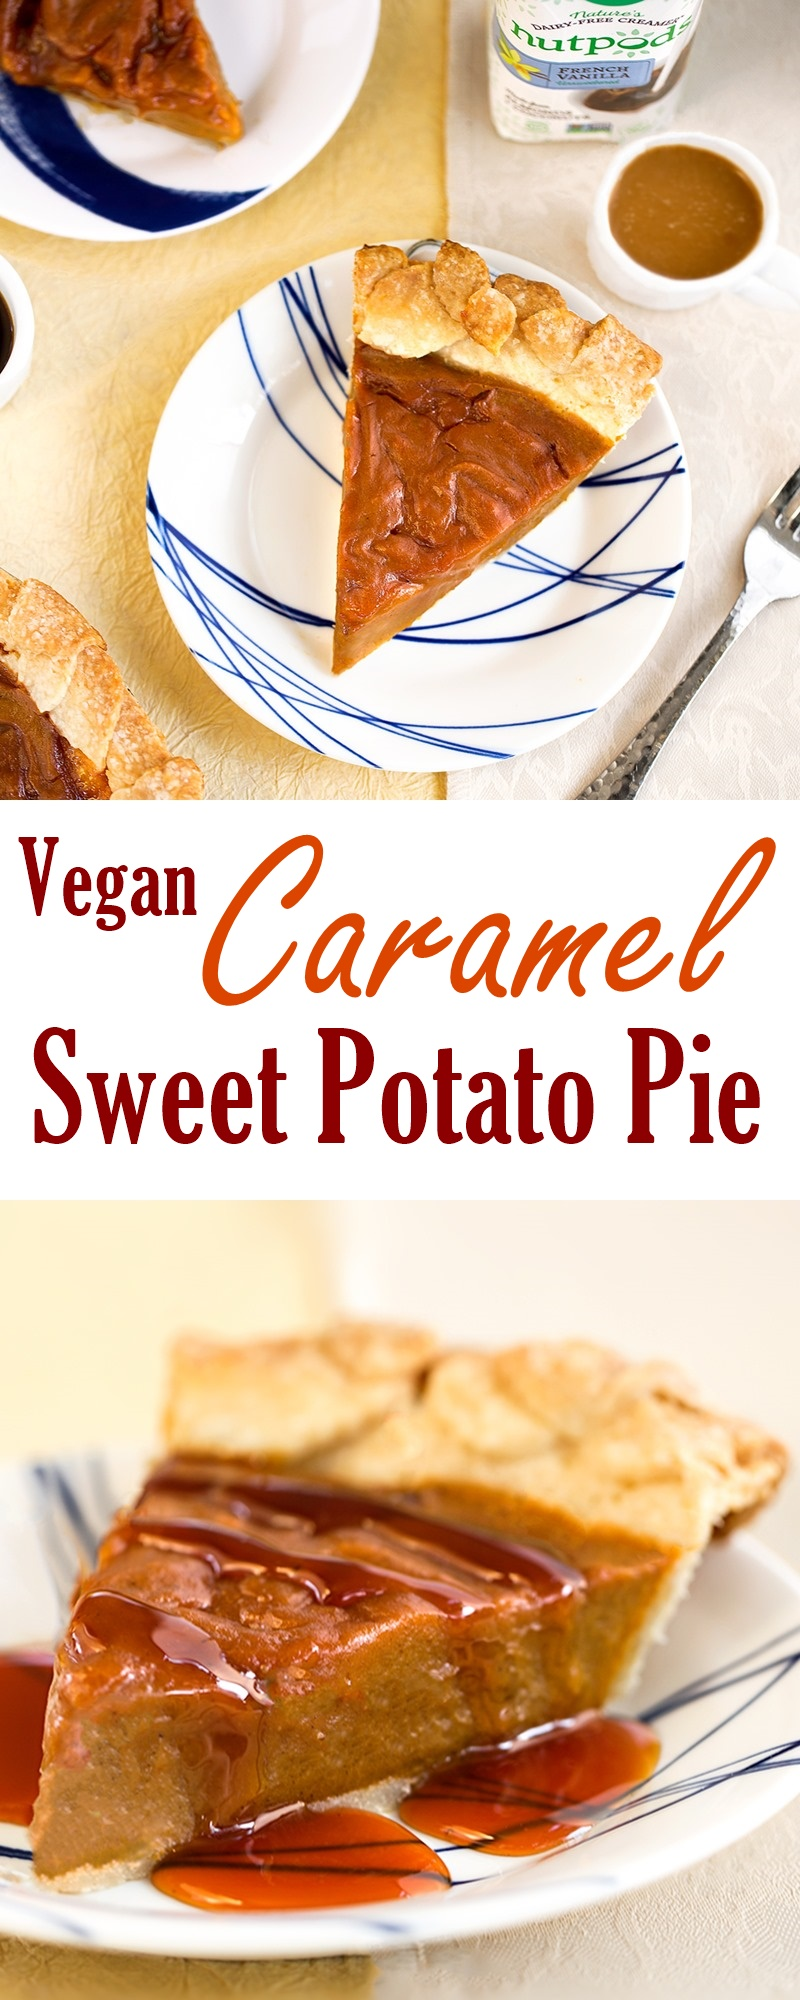 Vegan Caramel Sweet Potato Pie Recipe (Dairy-free, Egg-free)